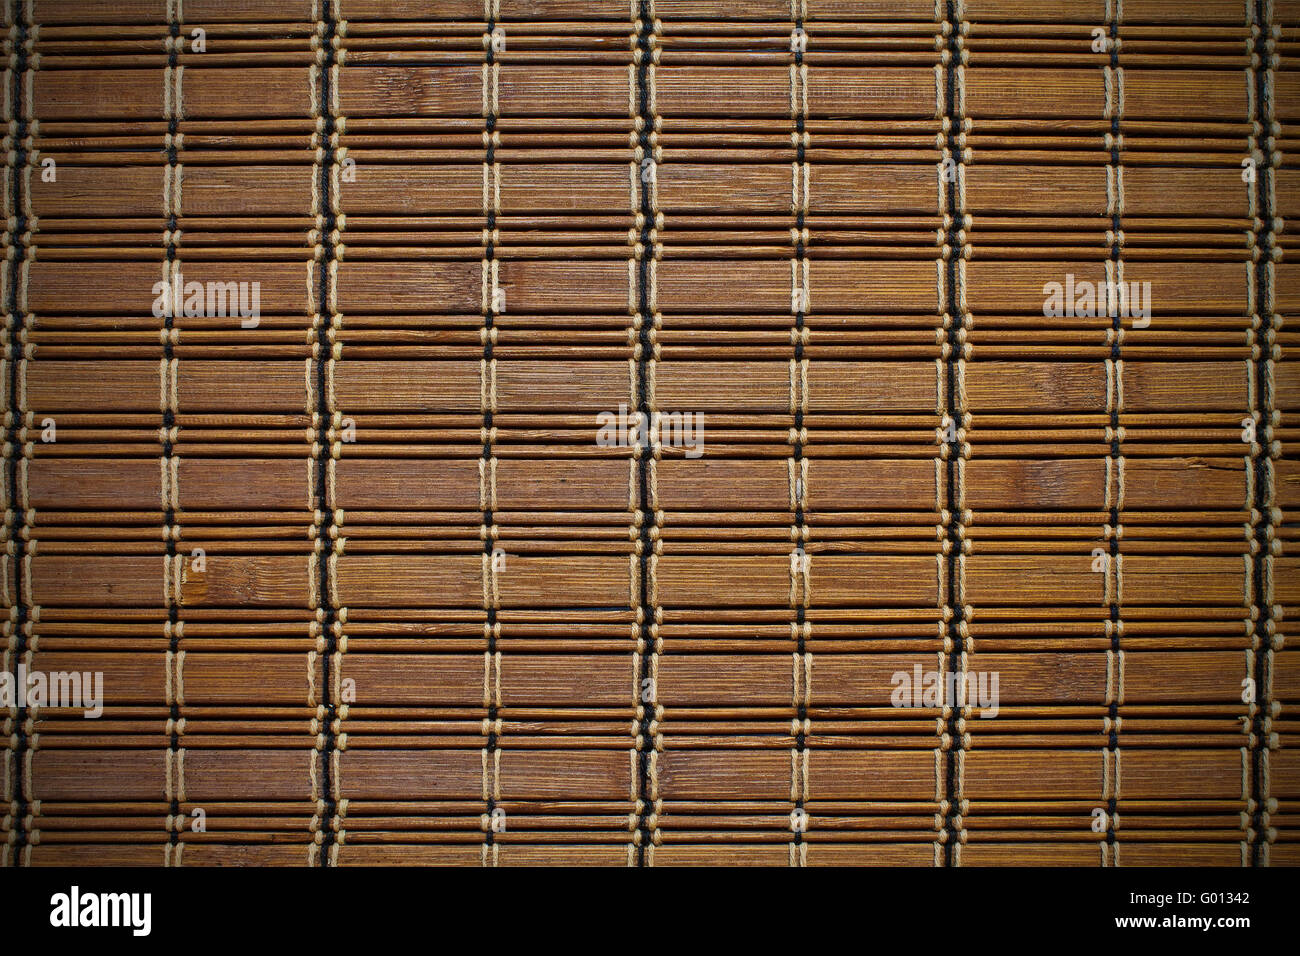 background bamboo mat brown with braid - Stock Image